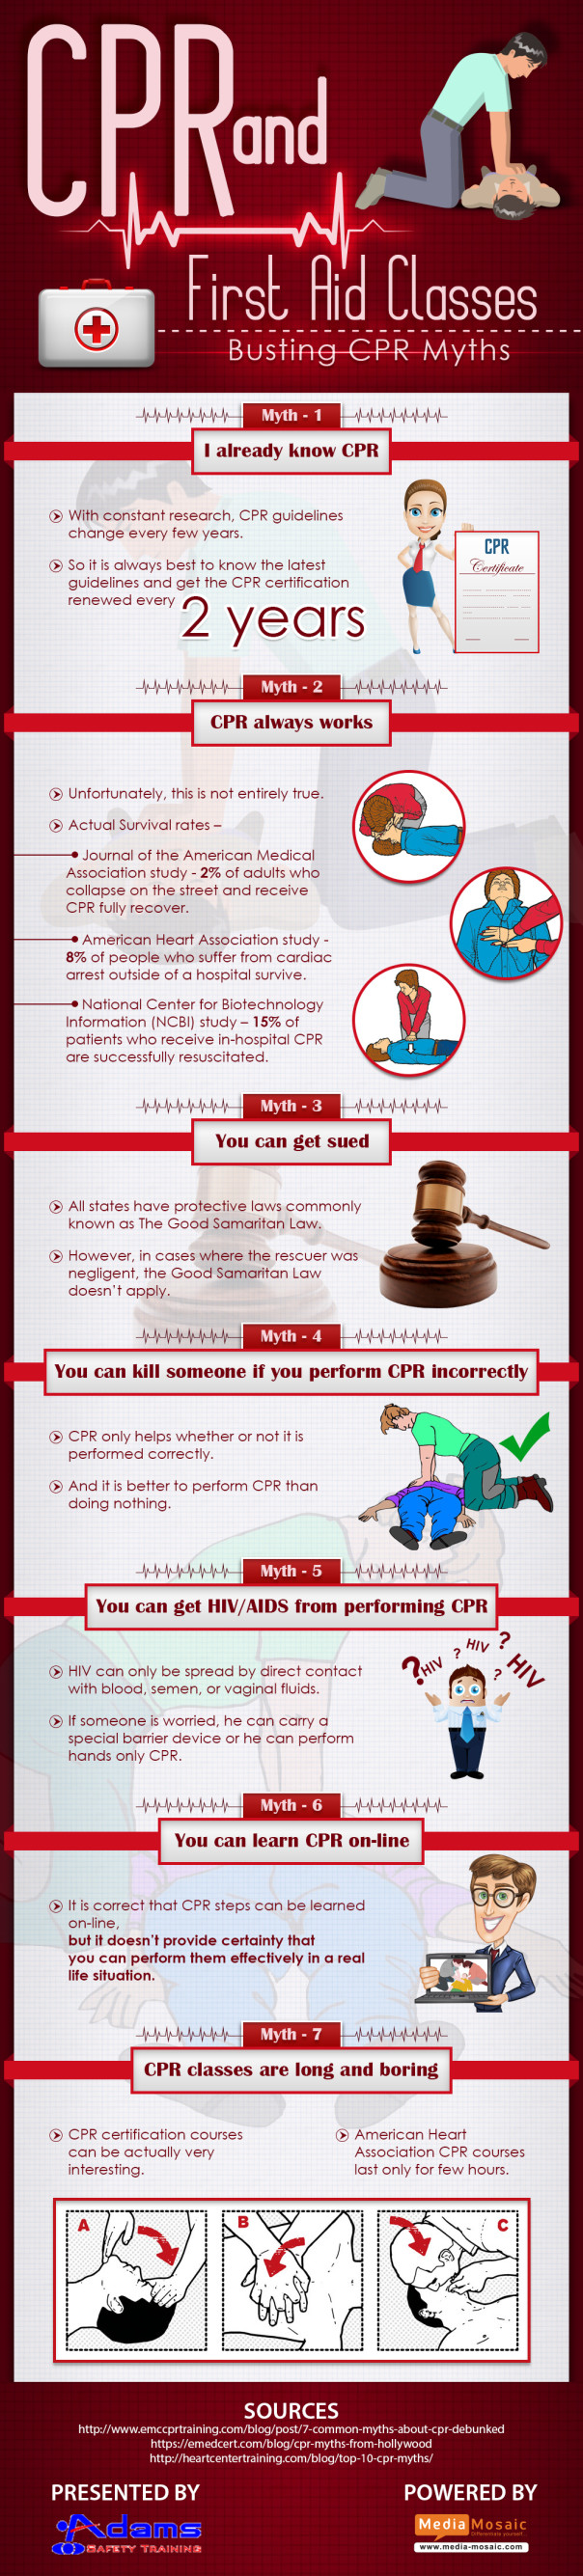 7 cpr myths their explanations adams safety 7 cpr myths and their explanations xflitez Images